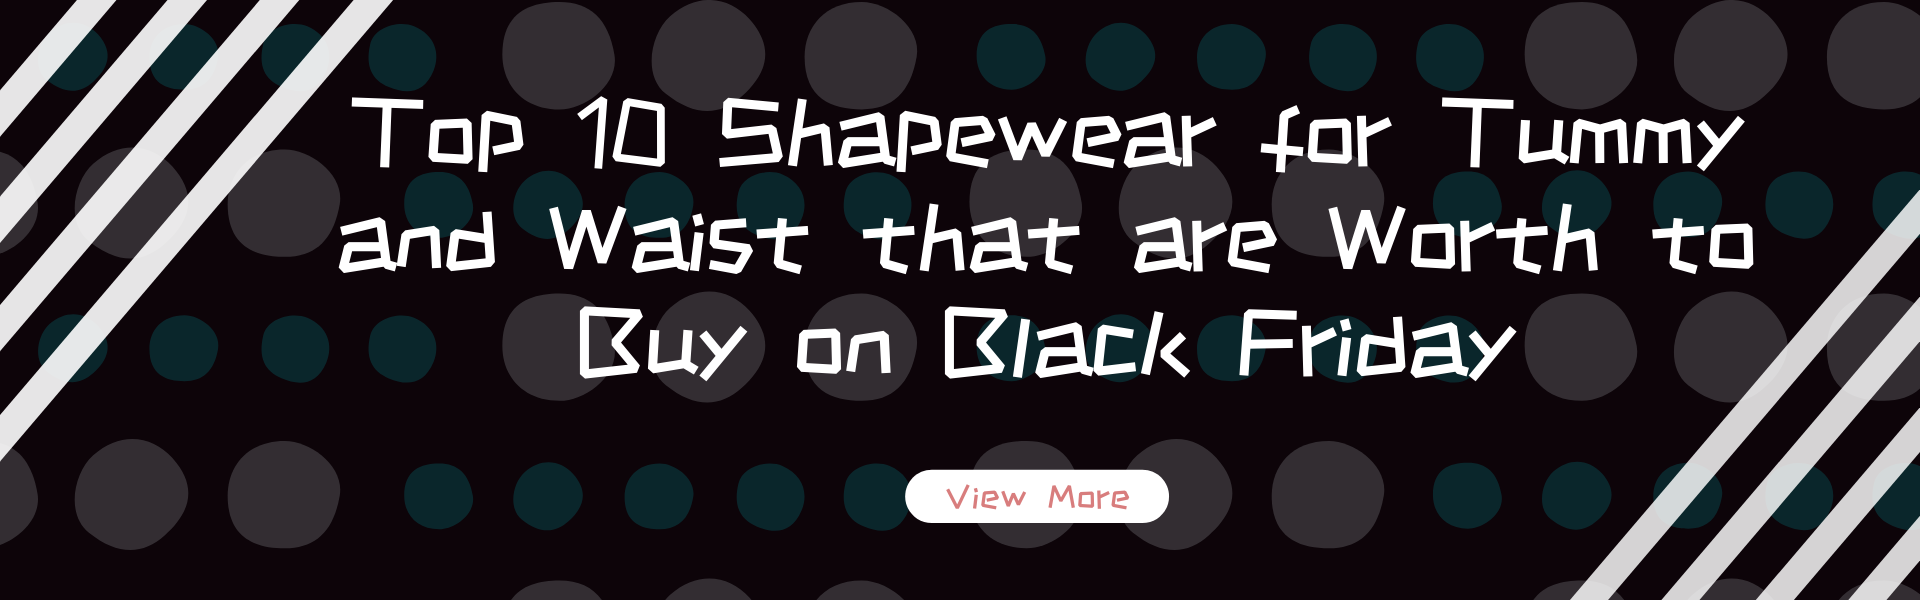 Top 10 Shapewear for Tummy and Waist that are Worth to Buy on Black Friday